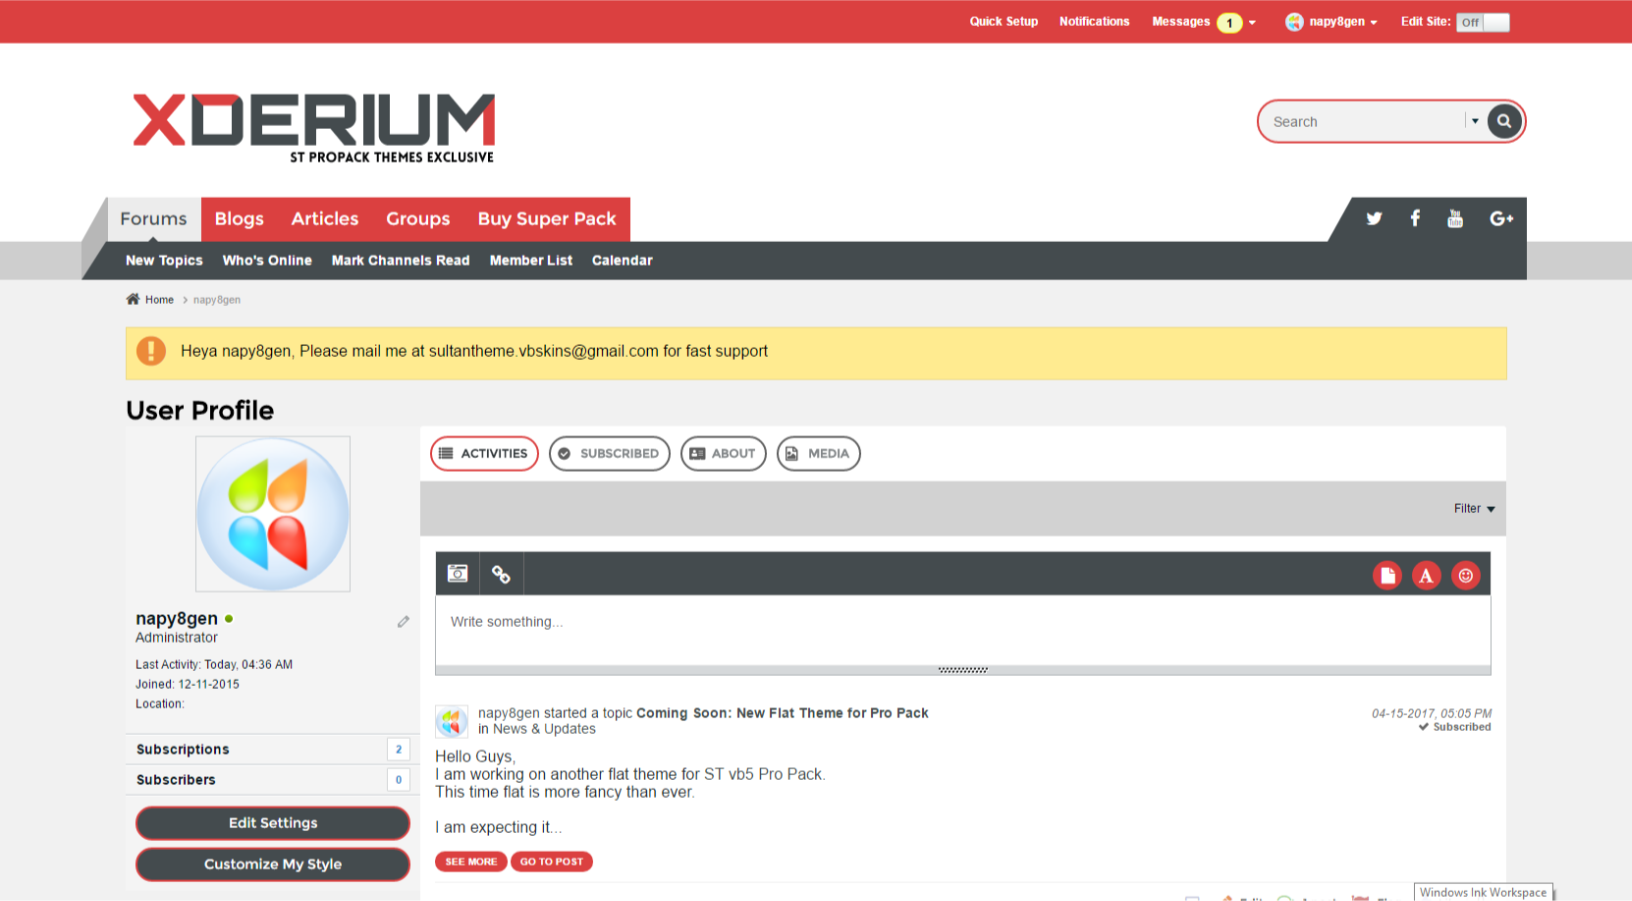 Gmail themes not working 2017 - Cerium D And Xderium And Trixerium Styles Are The Best Premium Vb5 Flat Themes Ever Made We Have Done A Major Icons Overhaul We Use Custom Templates That